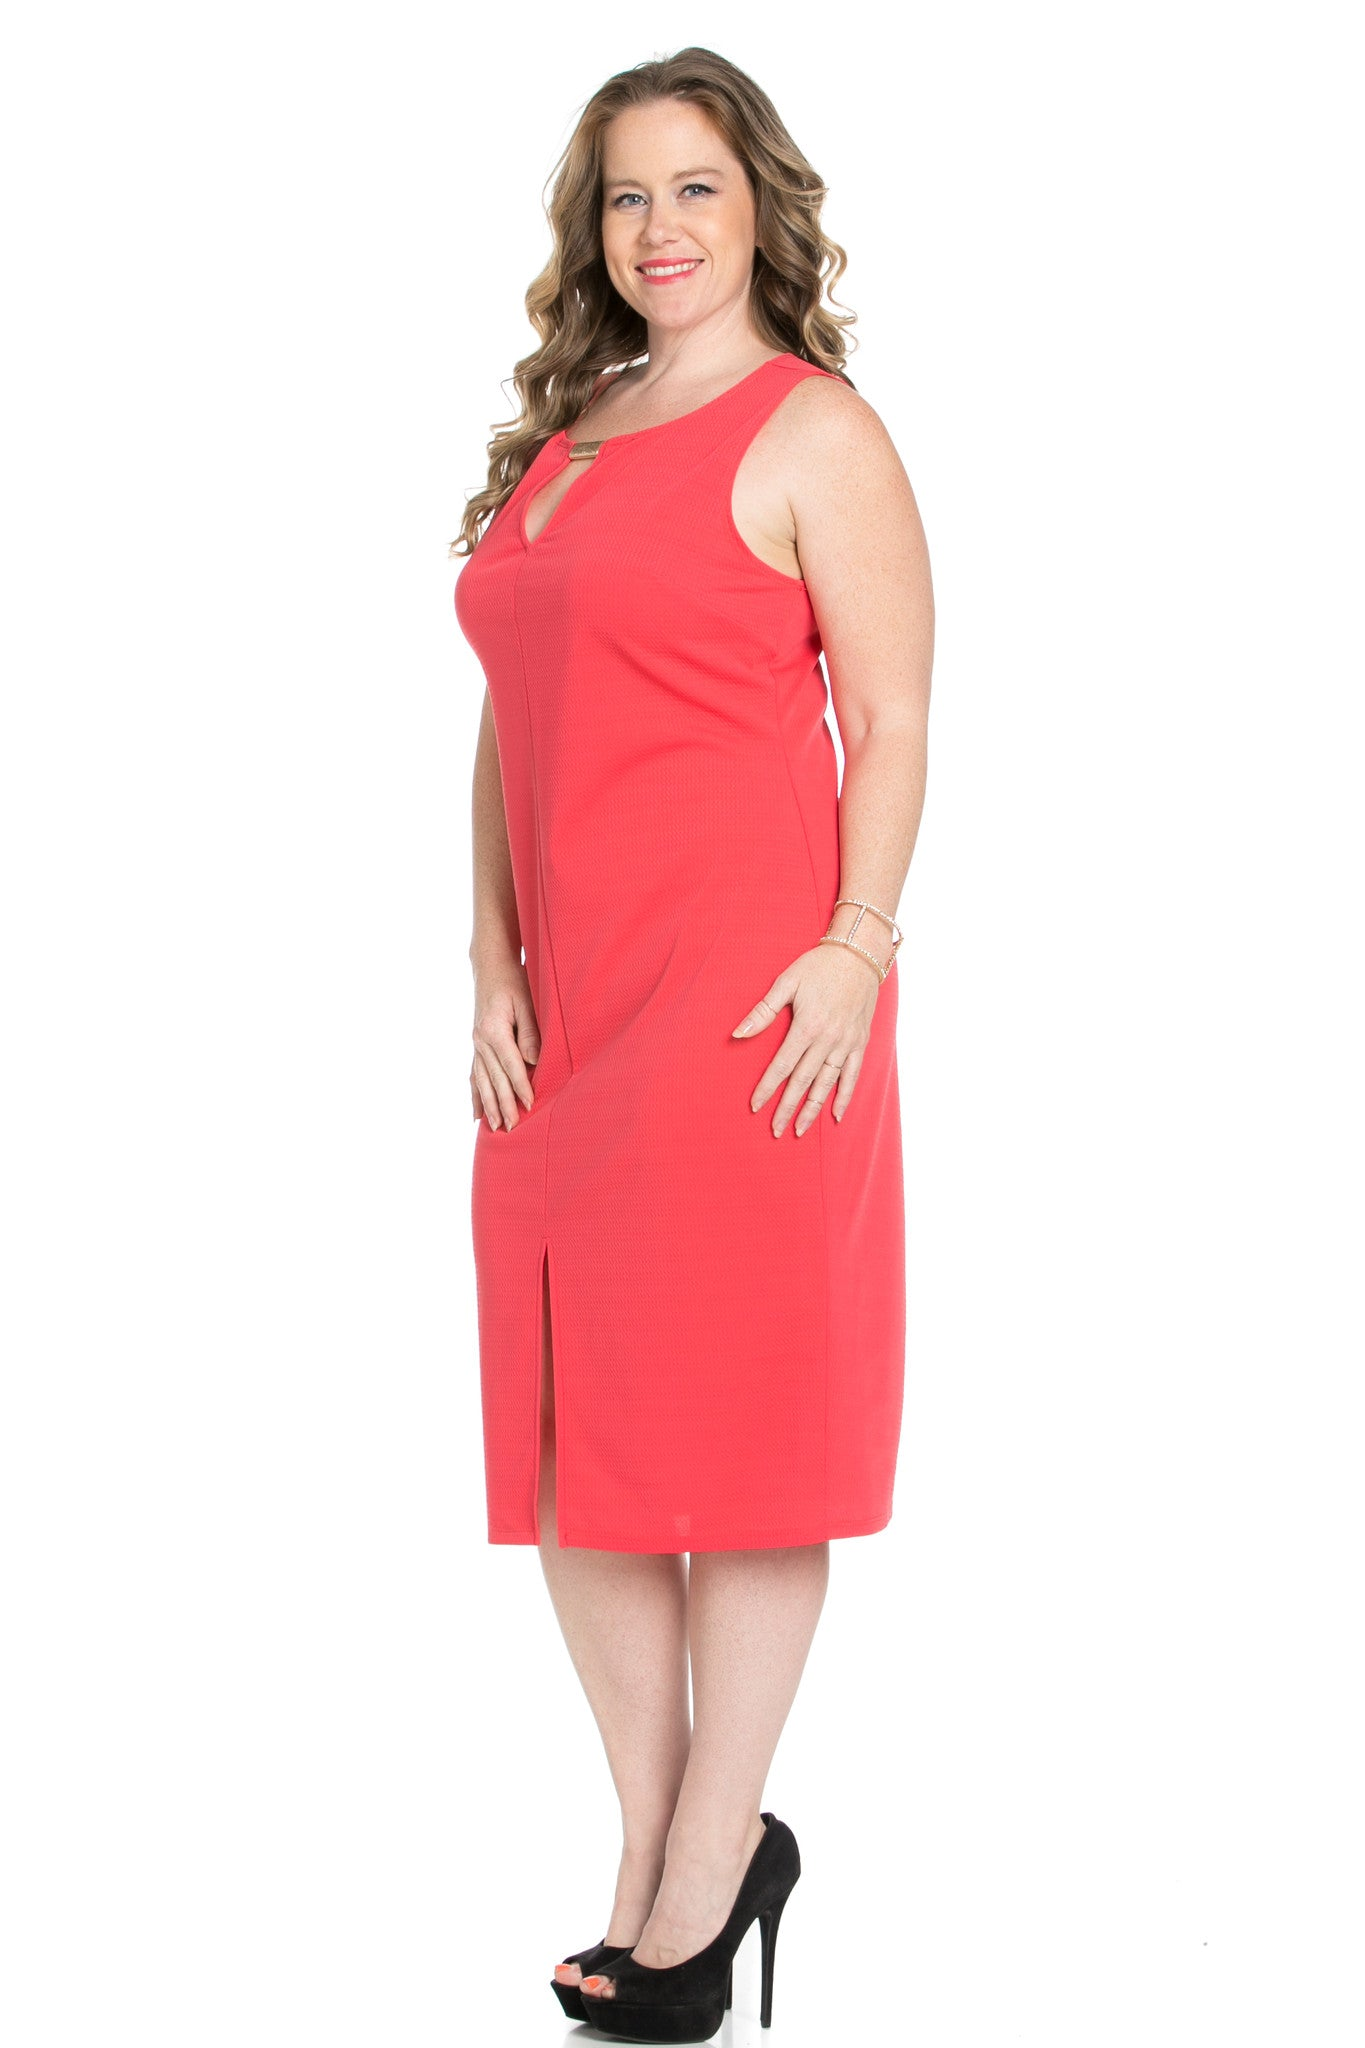 Coral Modest a Bit with Bare Shoulders Dress - Dresses - My Yuccie - 6